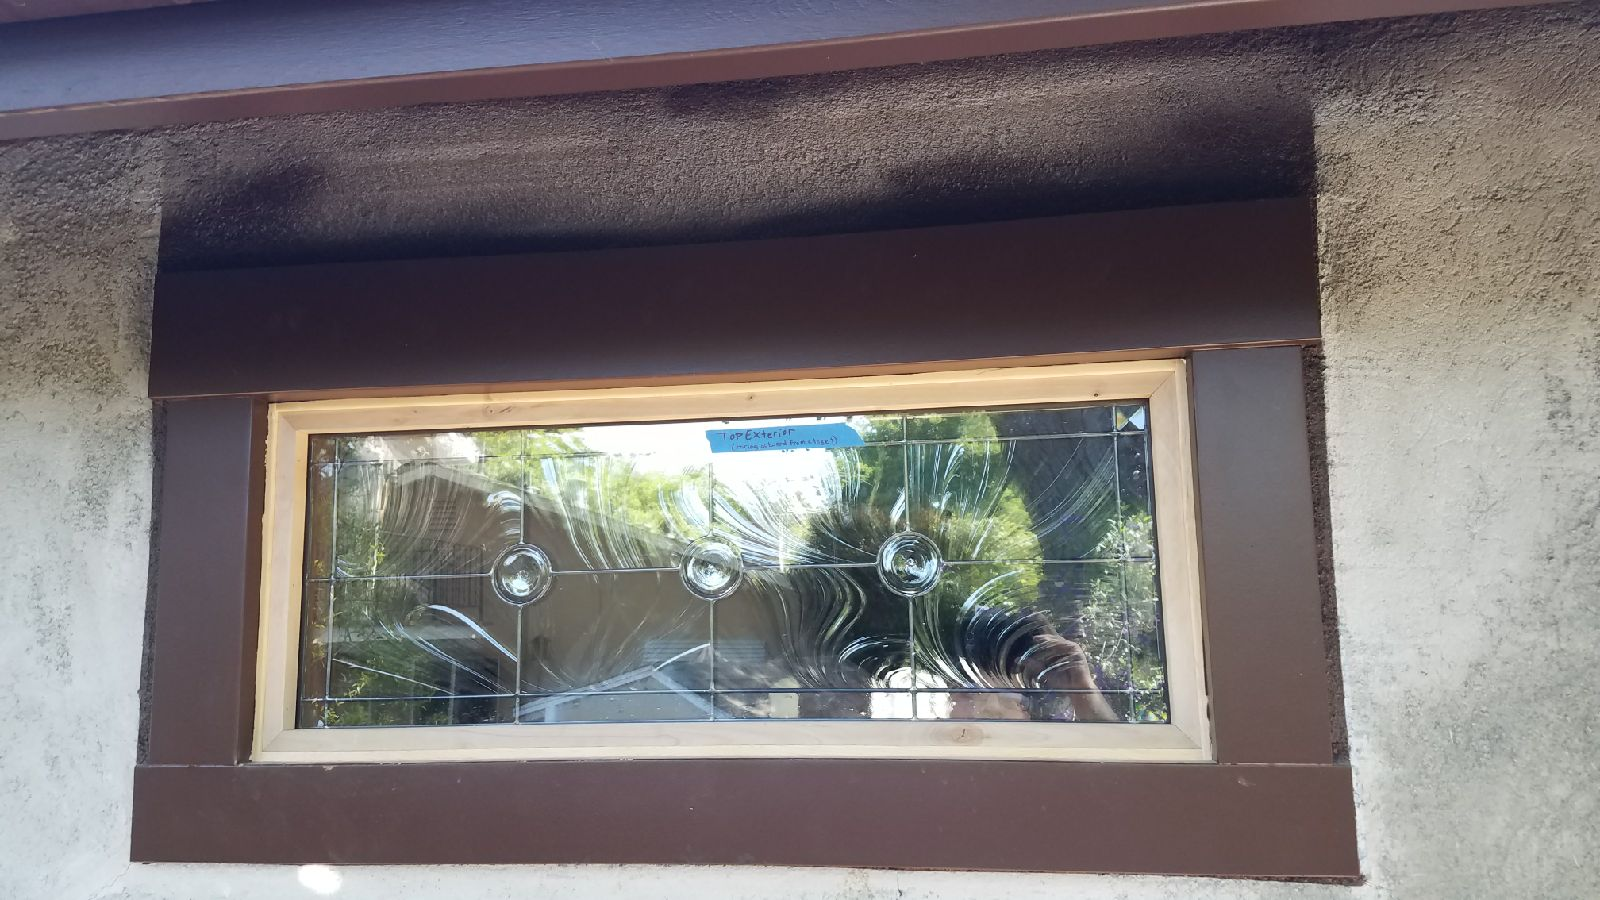 insulated glass from exterior.jpg